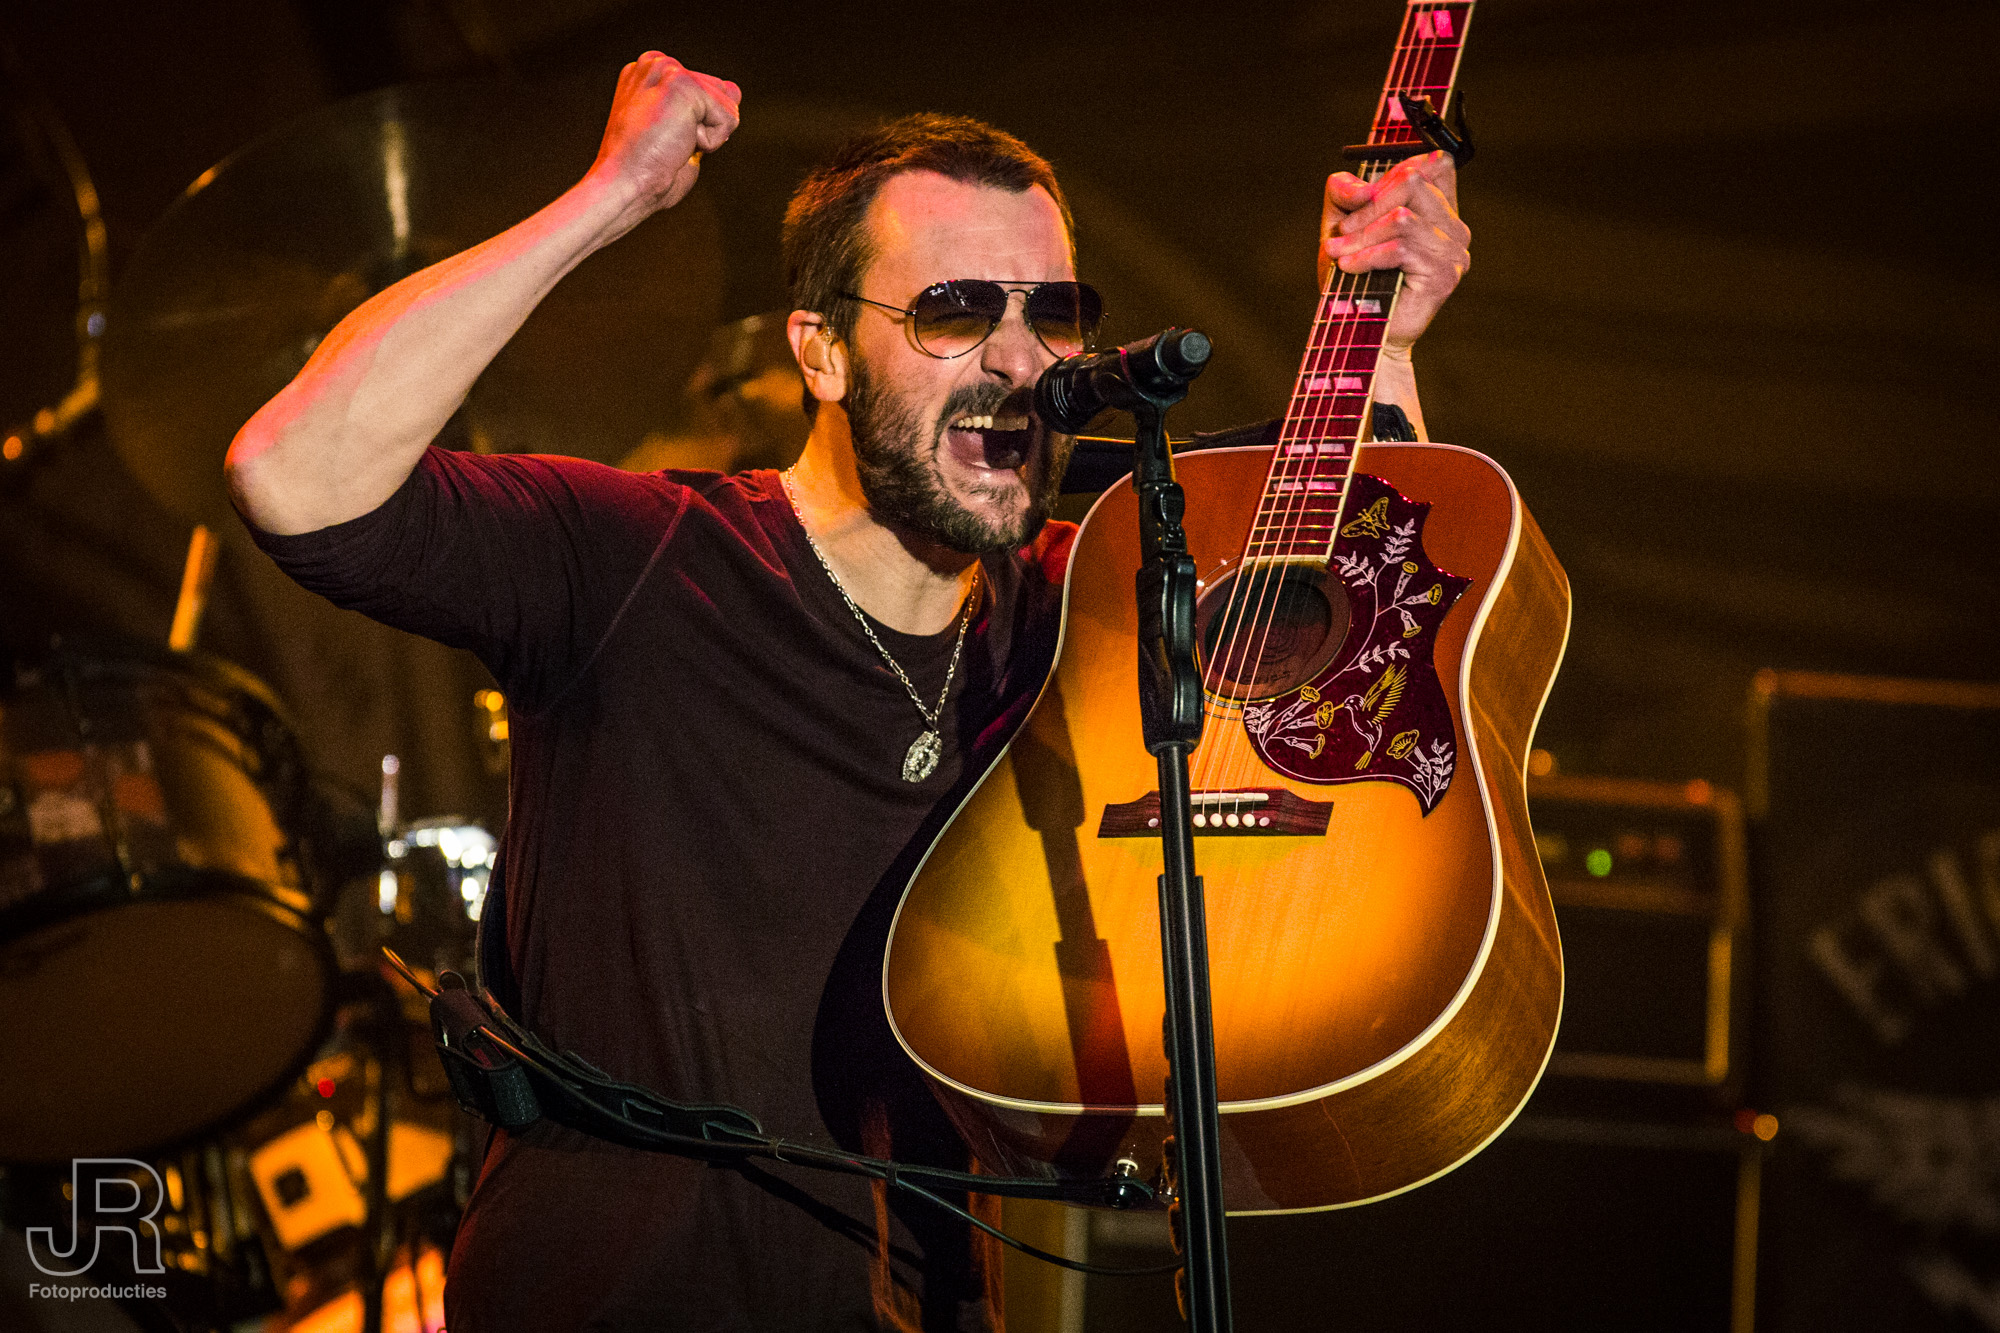 Concertrecensie: Eric Church in de Melkweg te Amsterdam